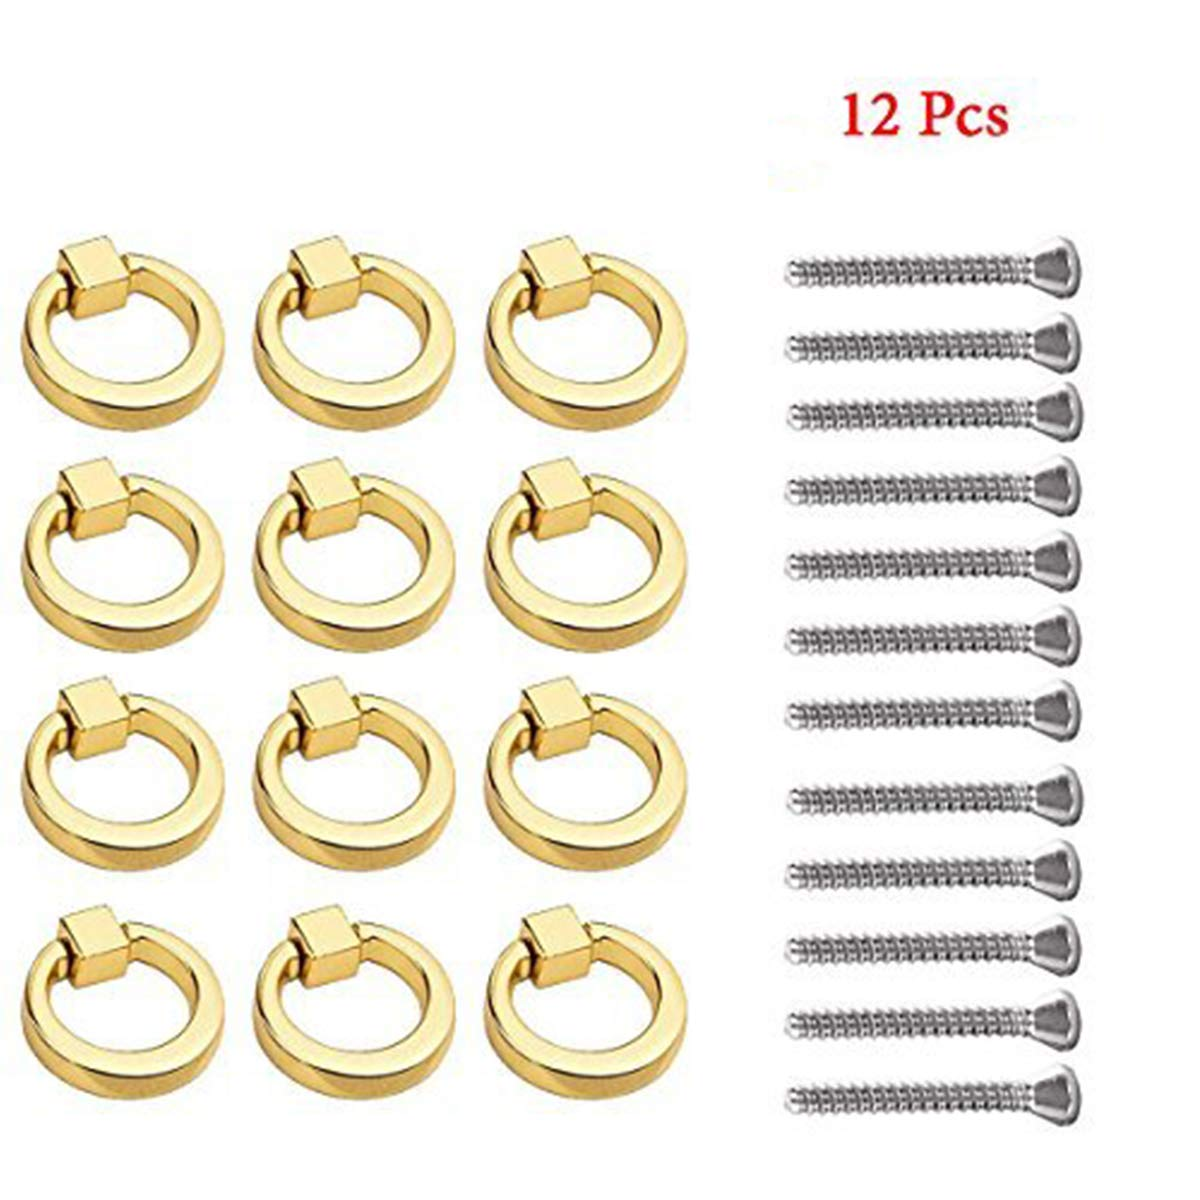 Modern Simplicity Ring Handle Zinc Alloy Single Hole Drawers Handle Jewelry Box Knobs Dressing Table Handle 12Pcs (Gold)